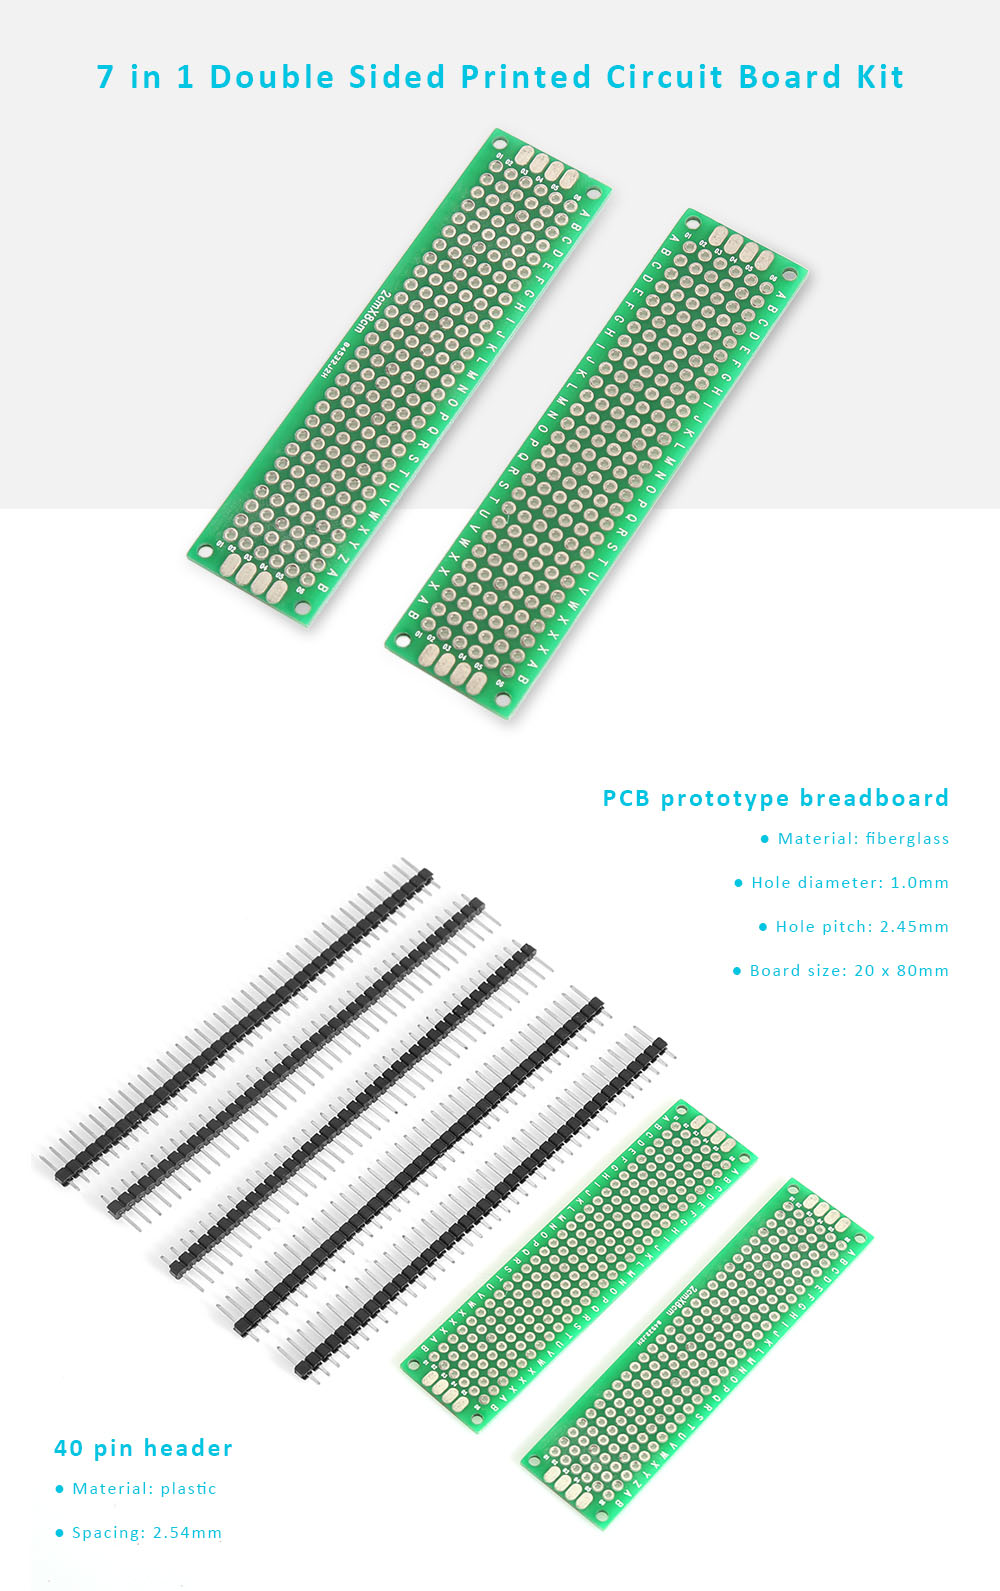 7 In 1 Double Sided Printed Circuit Board Kit For Diy 161 Free Fiberglass Package Contents 5 X Pin Header 2